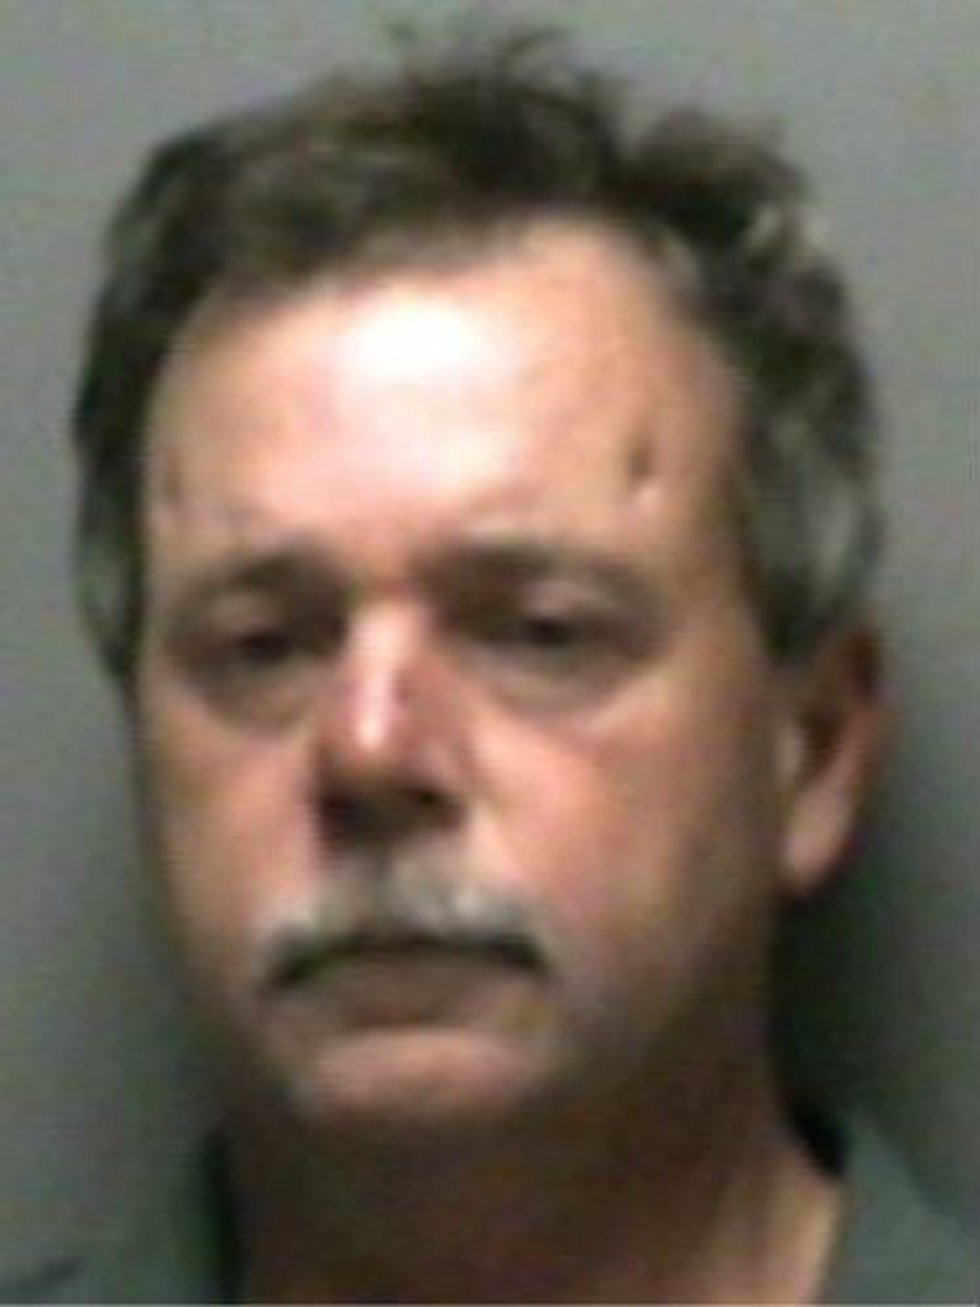 Bruce Burdick (Photo courtesy of the Rutherford Co. Sheriff's Office)